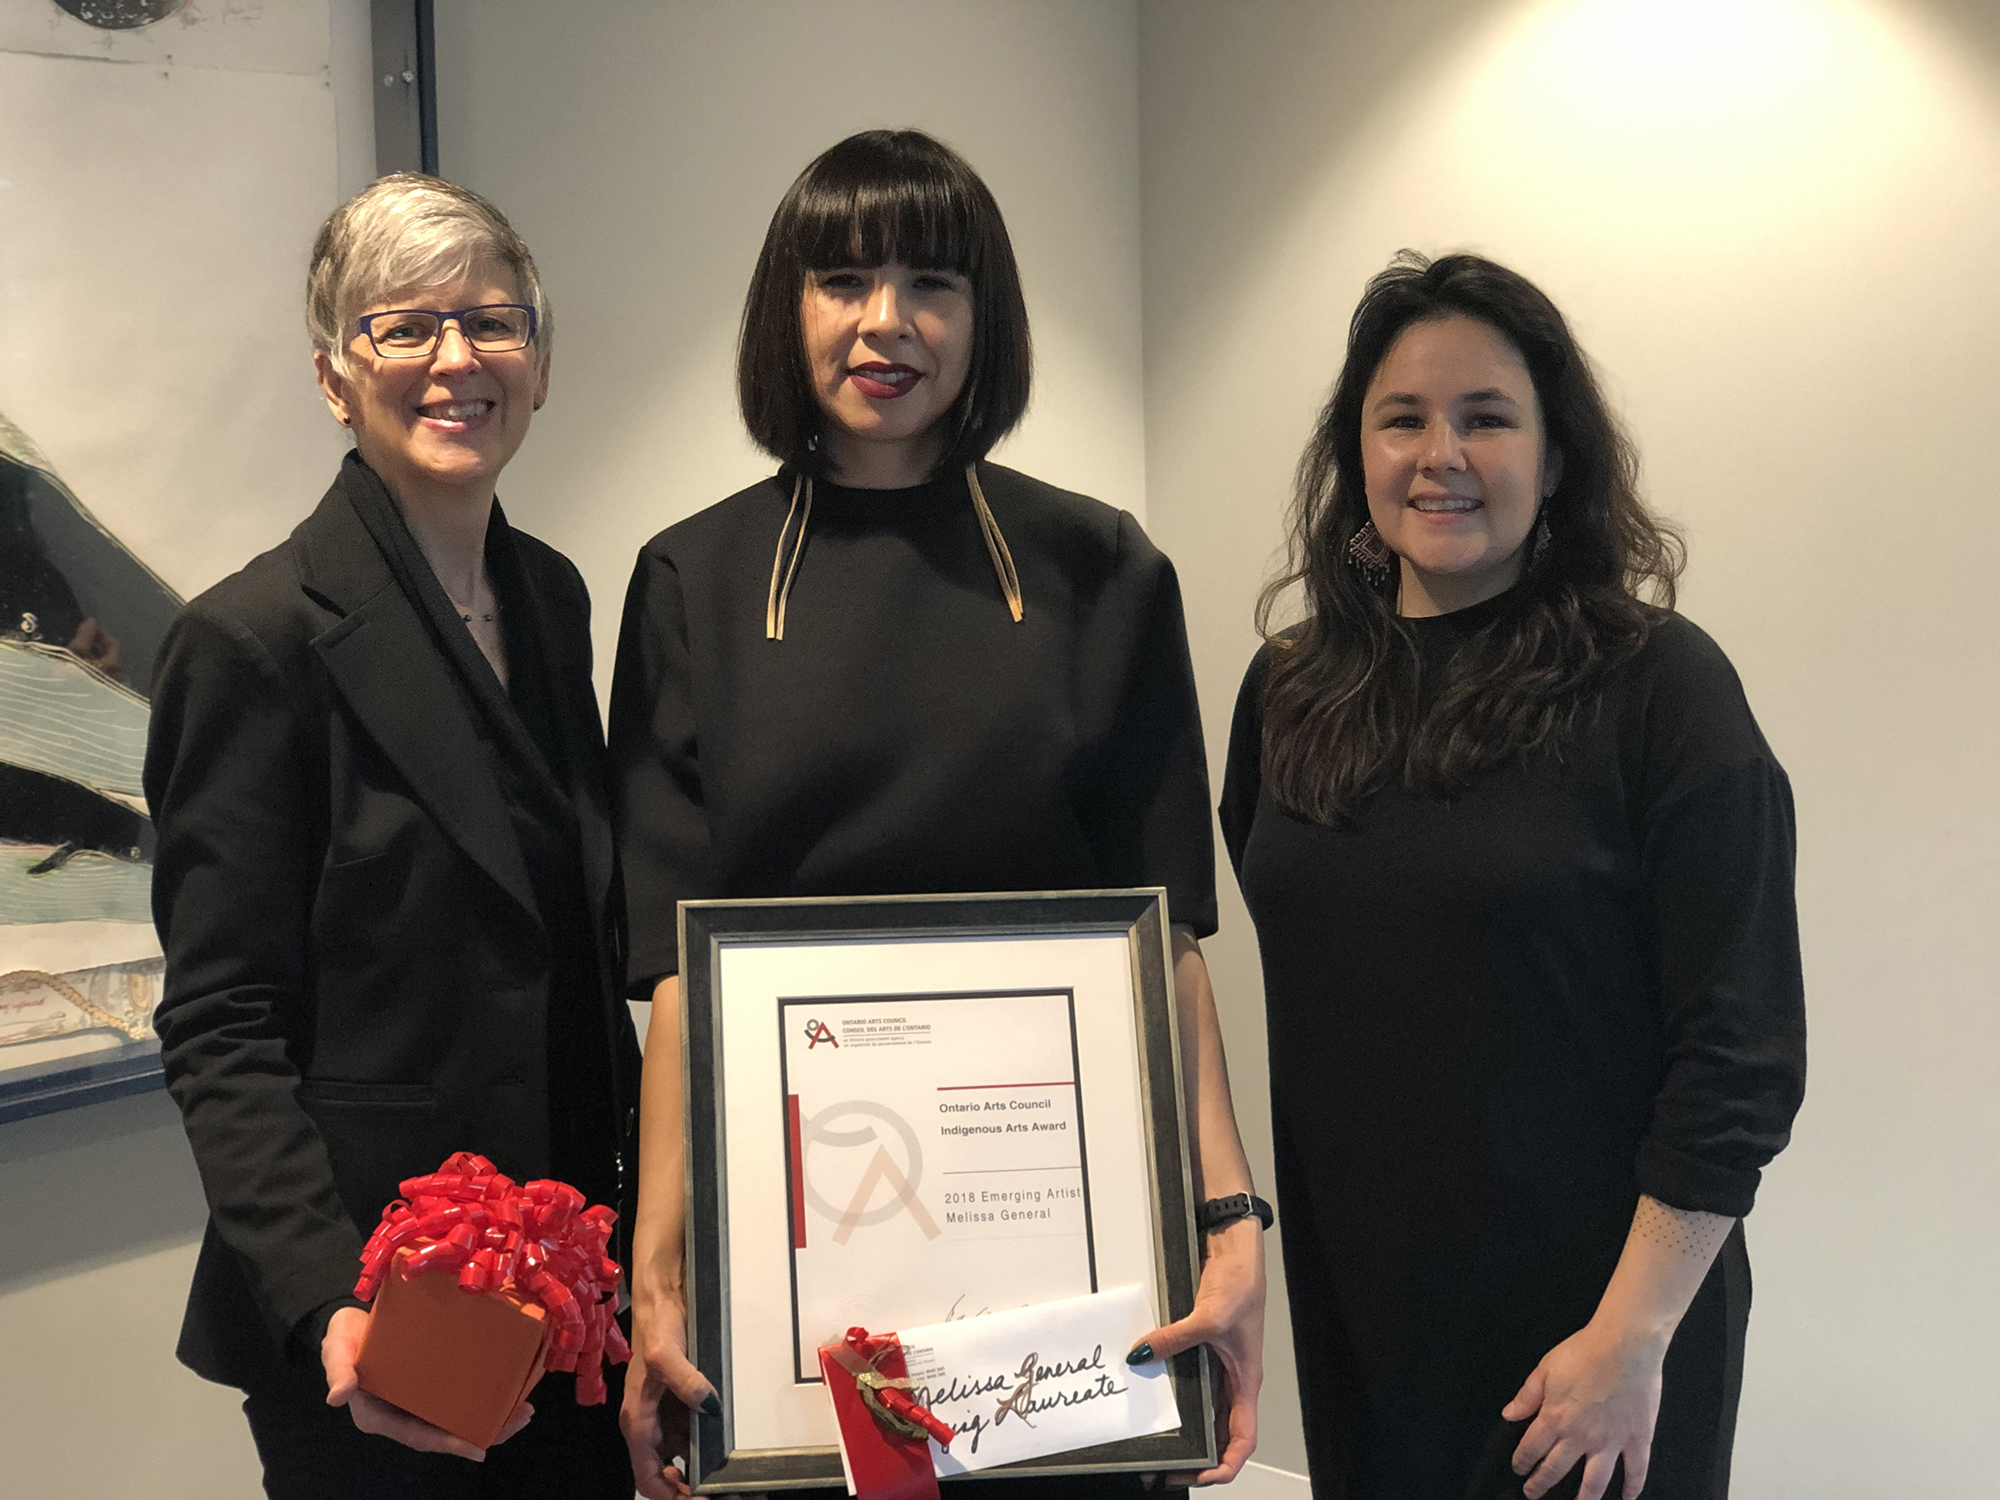 Carolyn Gloude, Awards Officer, Ontario Arts Council, Melissa General and Erika Iserhoff, Indigenous Culture Fund Grants Facilit